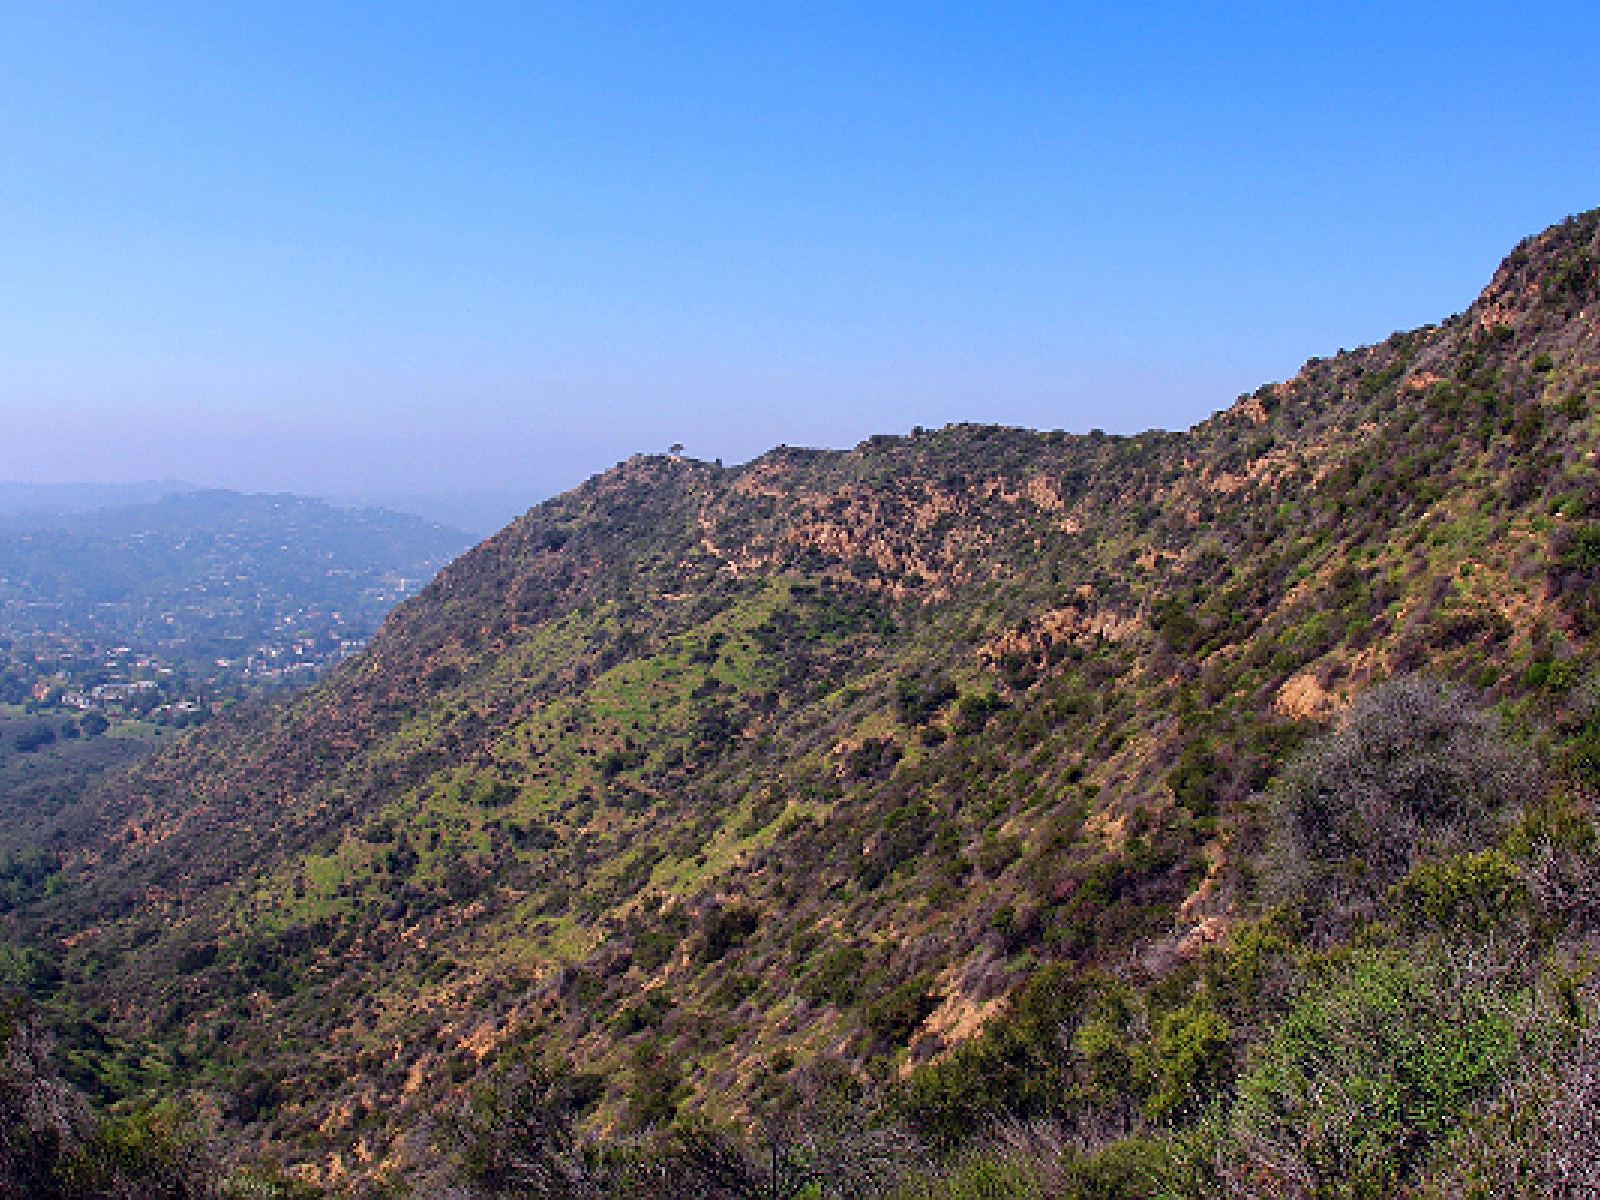 Main image for article titled A Guys Weekend of Adventure in Los Angeles